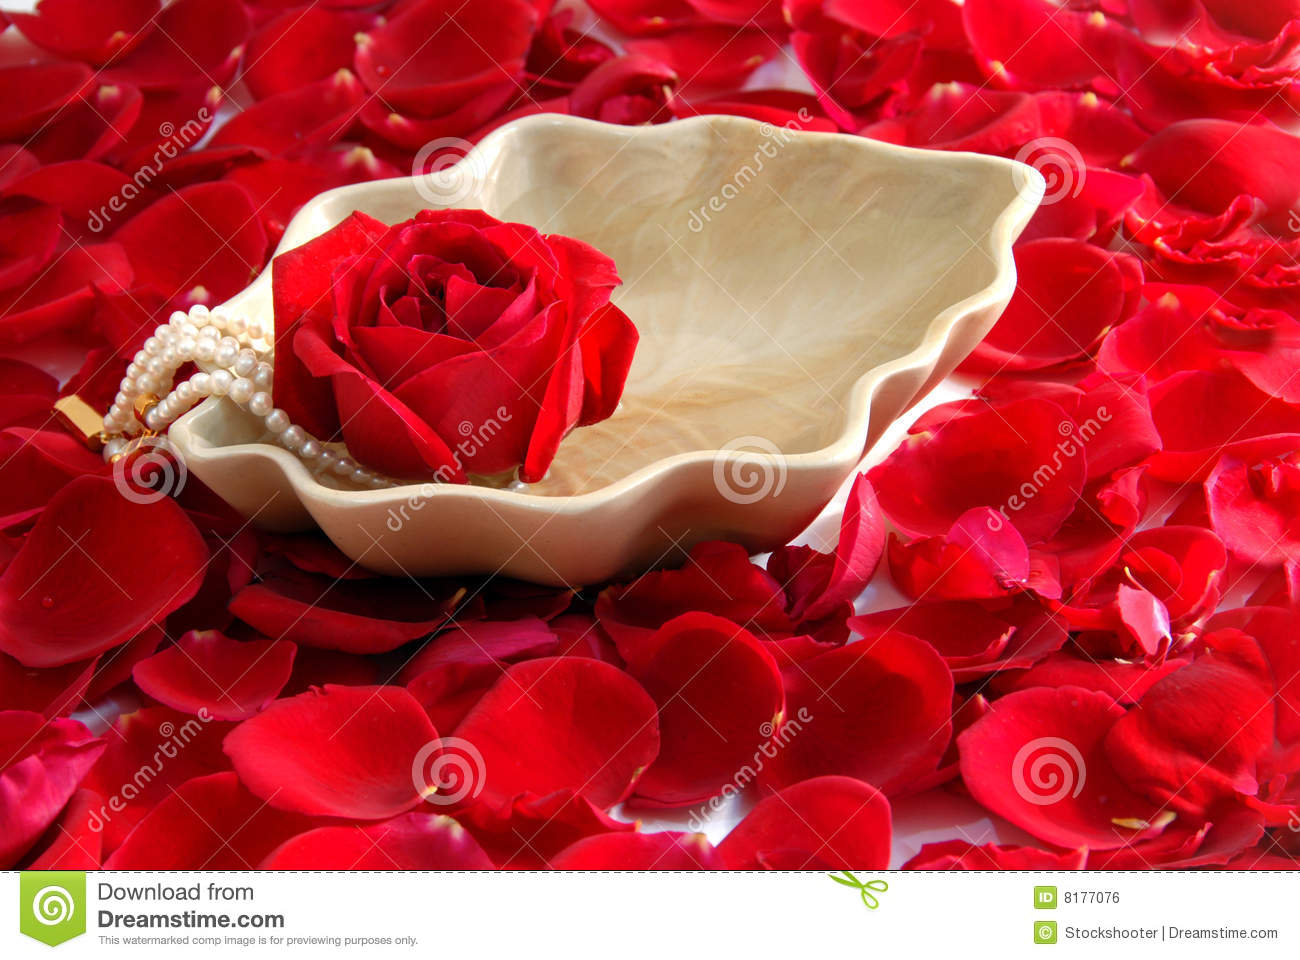 Red Rose Flower Petals Spa Aromatherapy Stock Photo   Image of pure     Red Rose flower petals spa aromatherapy  Pure  relaxation